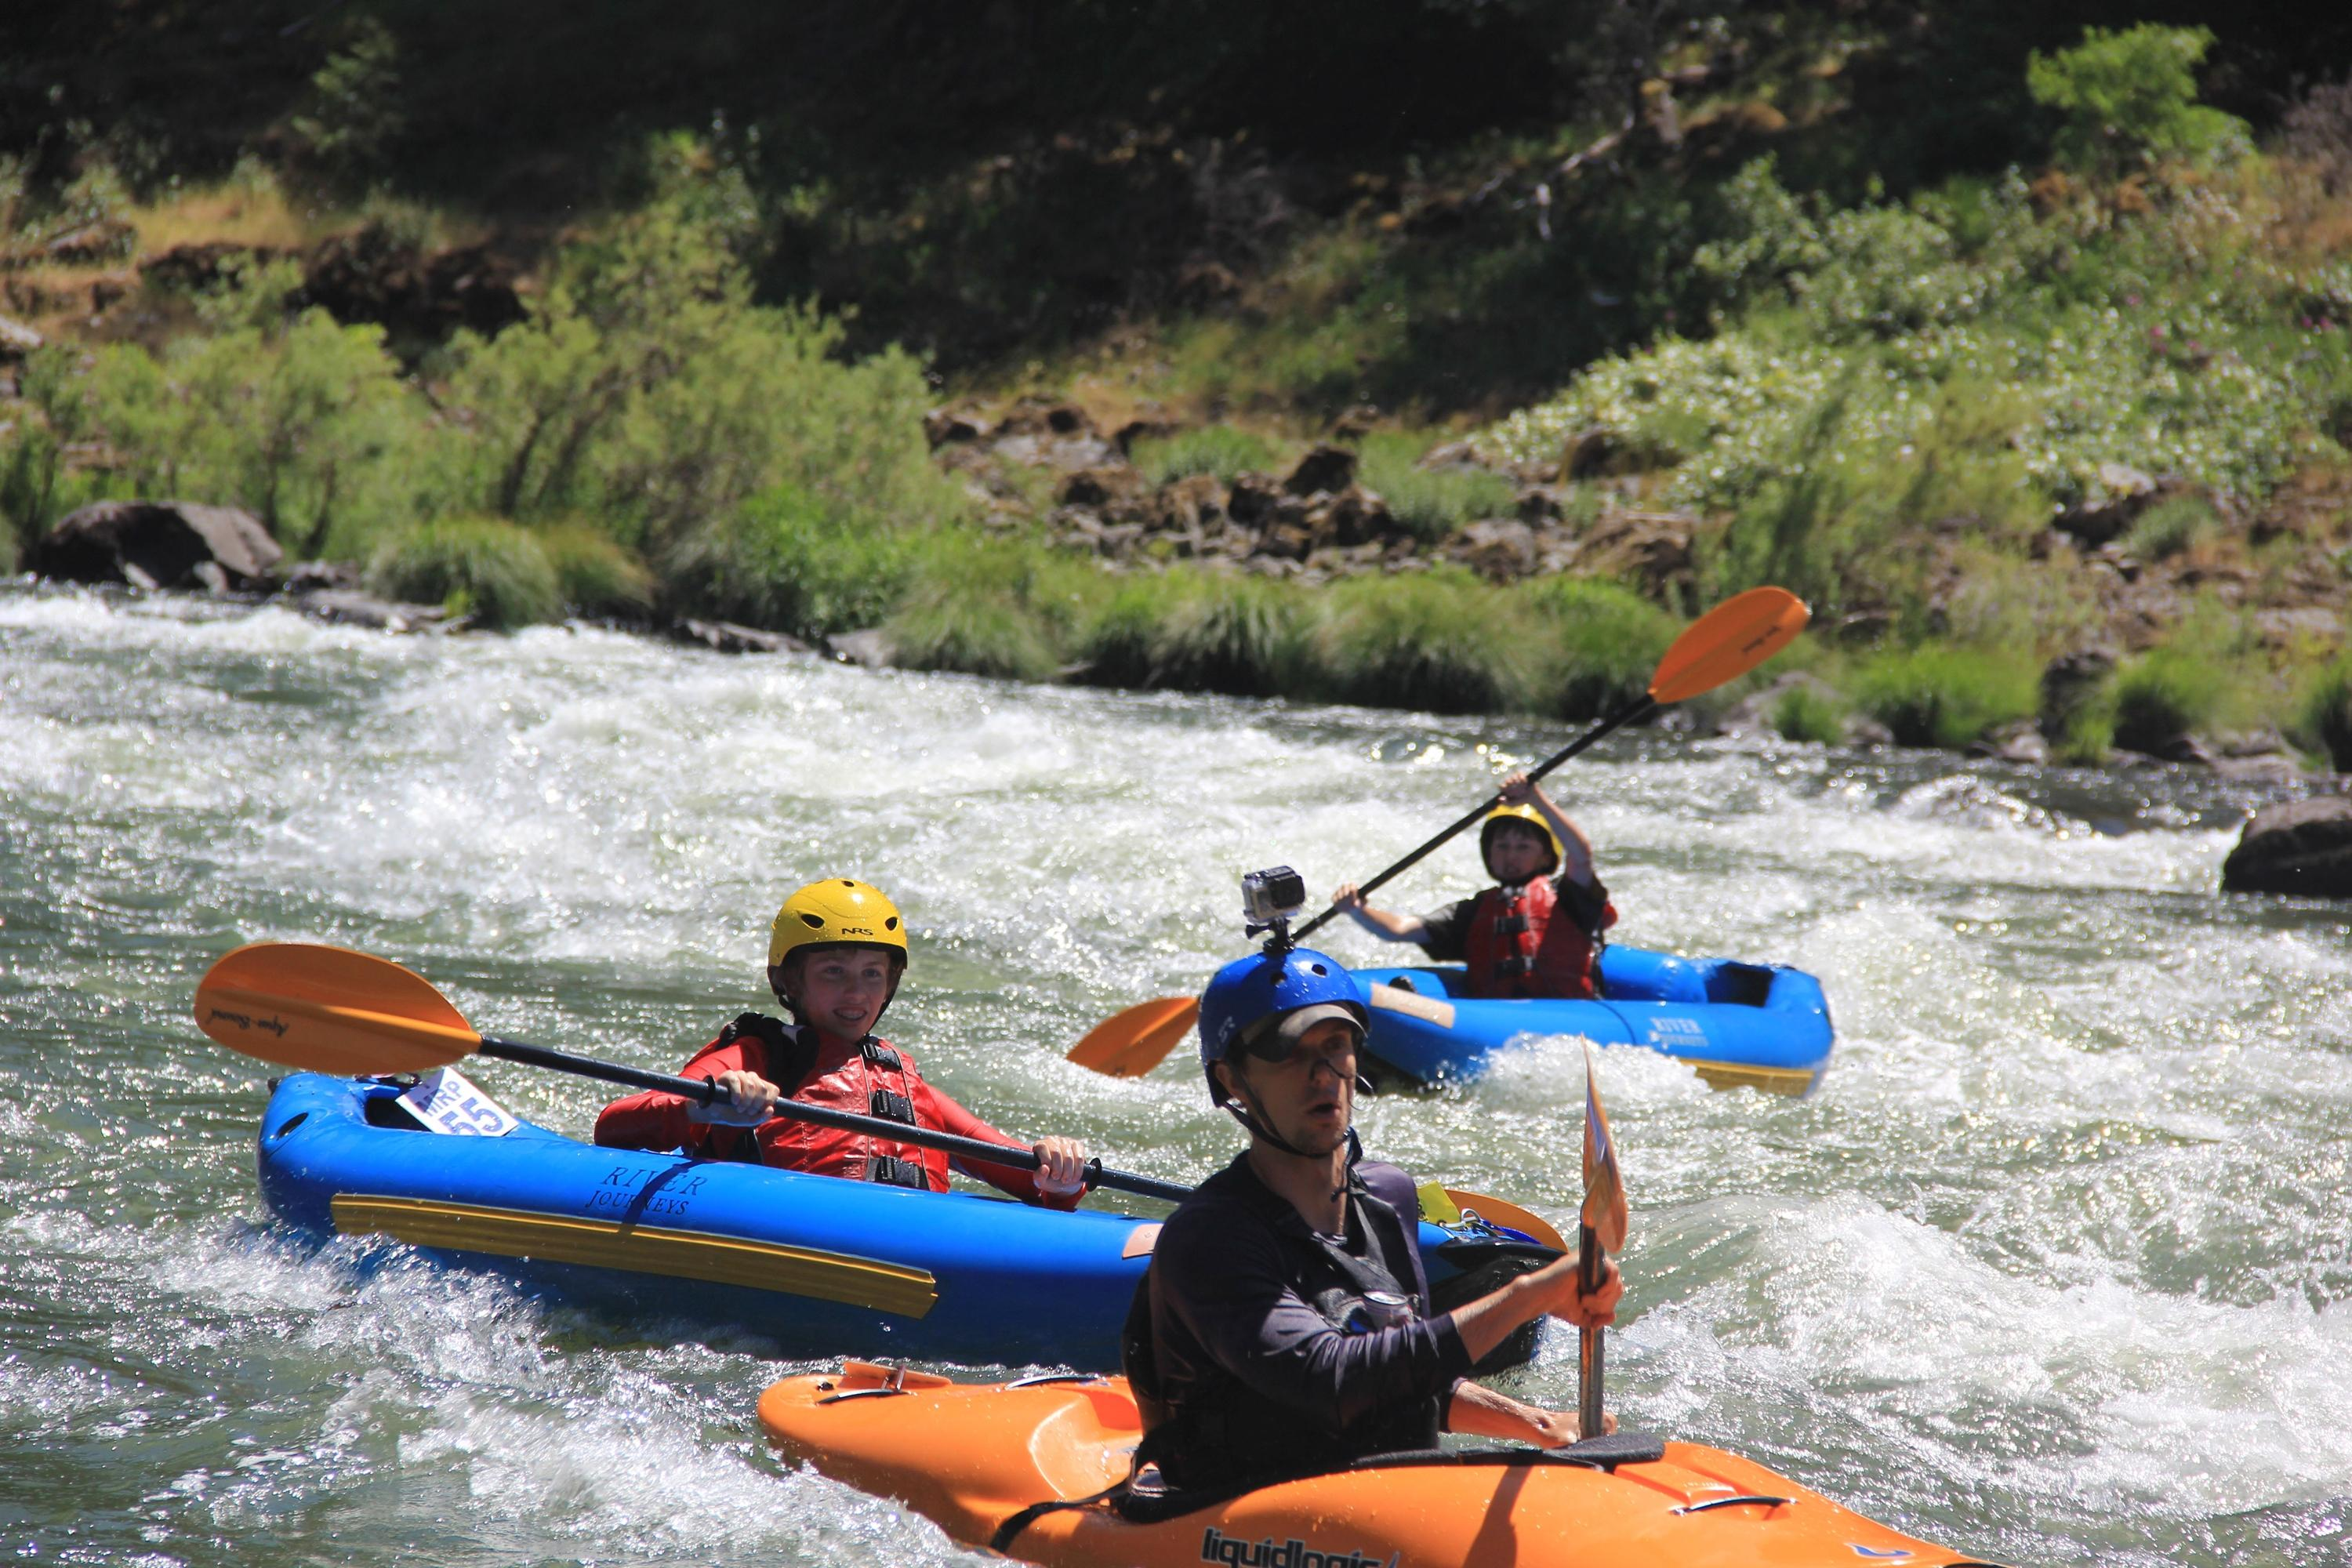 Zach Urness, along with Eli and Rylan take kayaks down the Rogue River. Photo by Robyn Orr